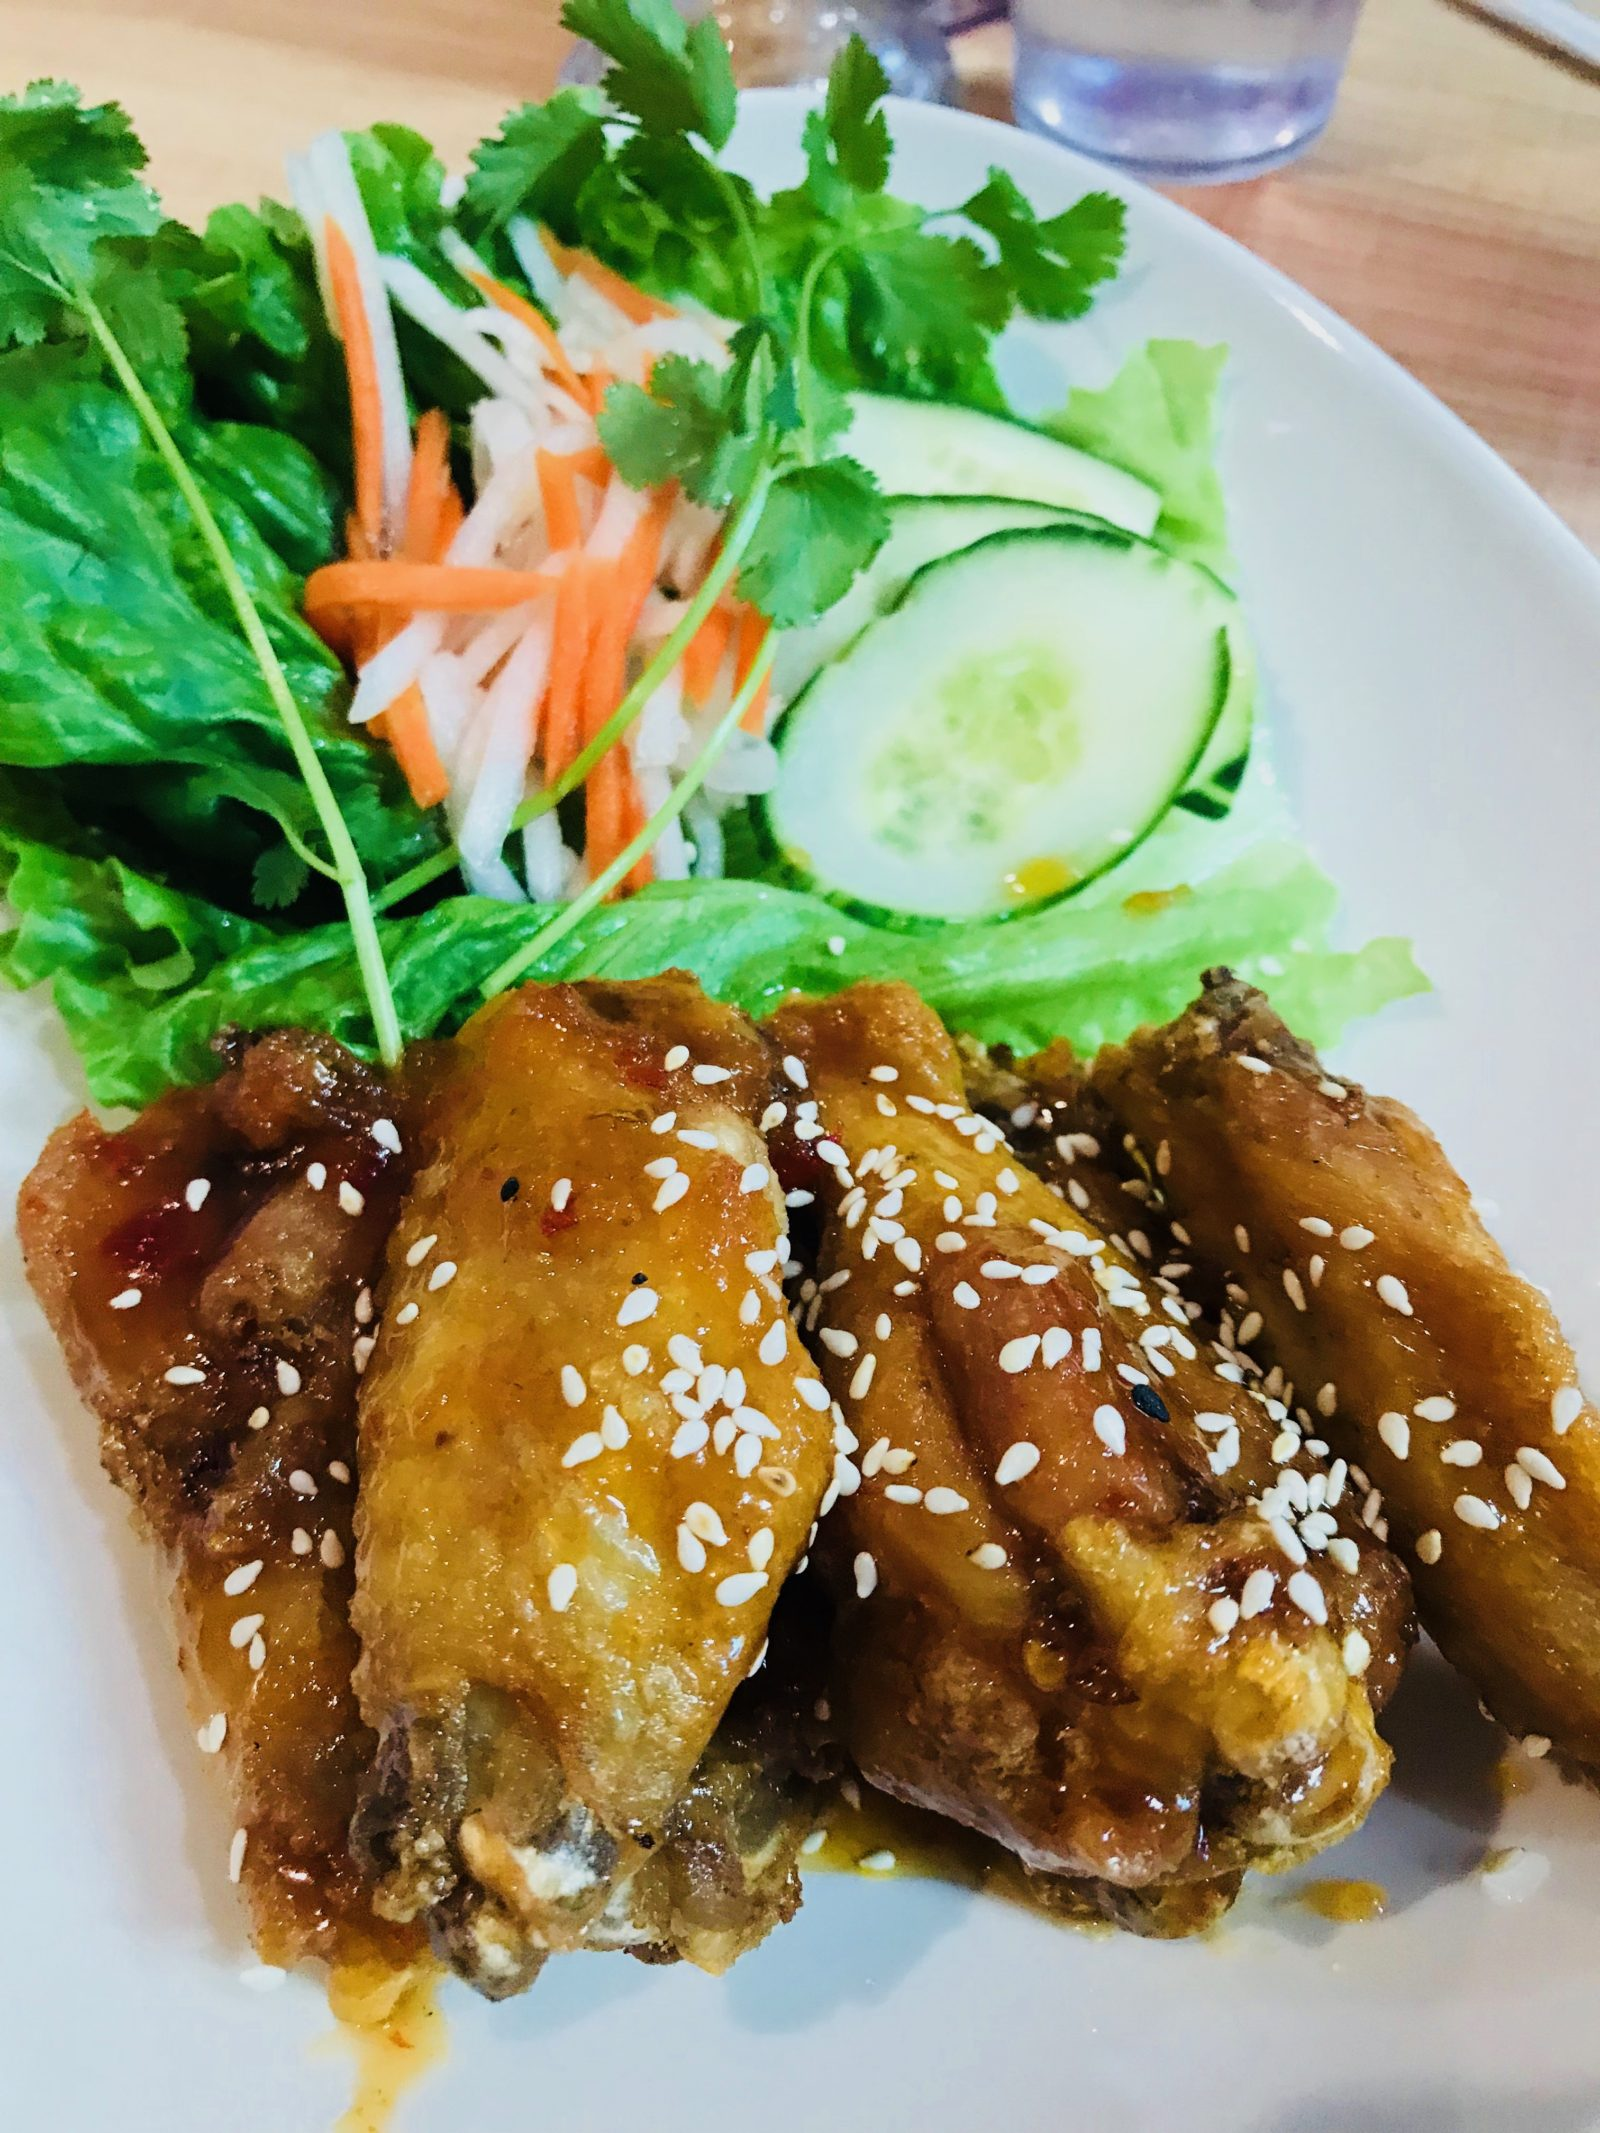 Pick of the Week - Pho Saigon Pearl - Chicken Wings